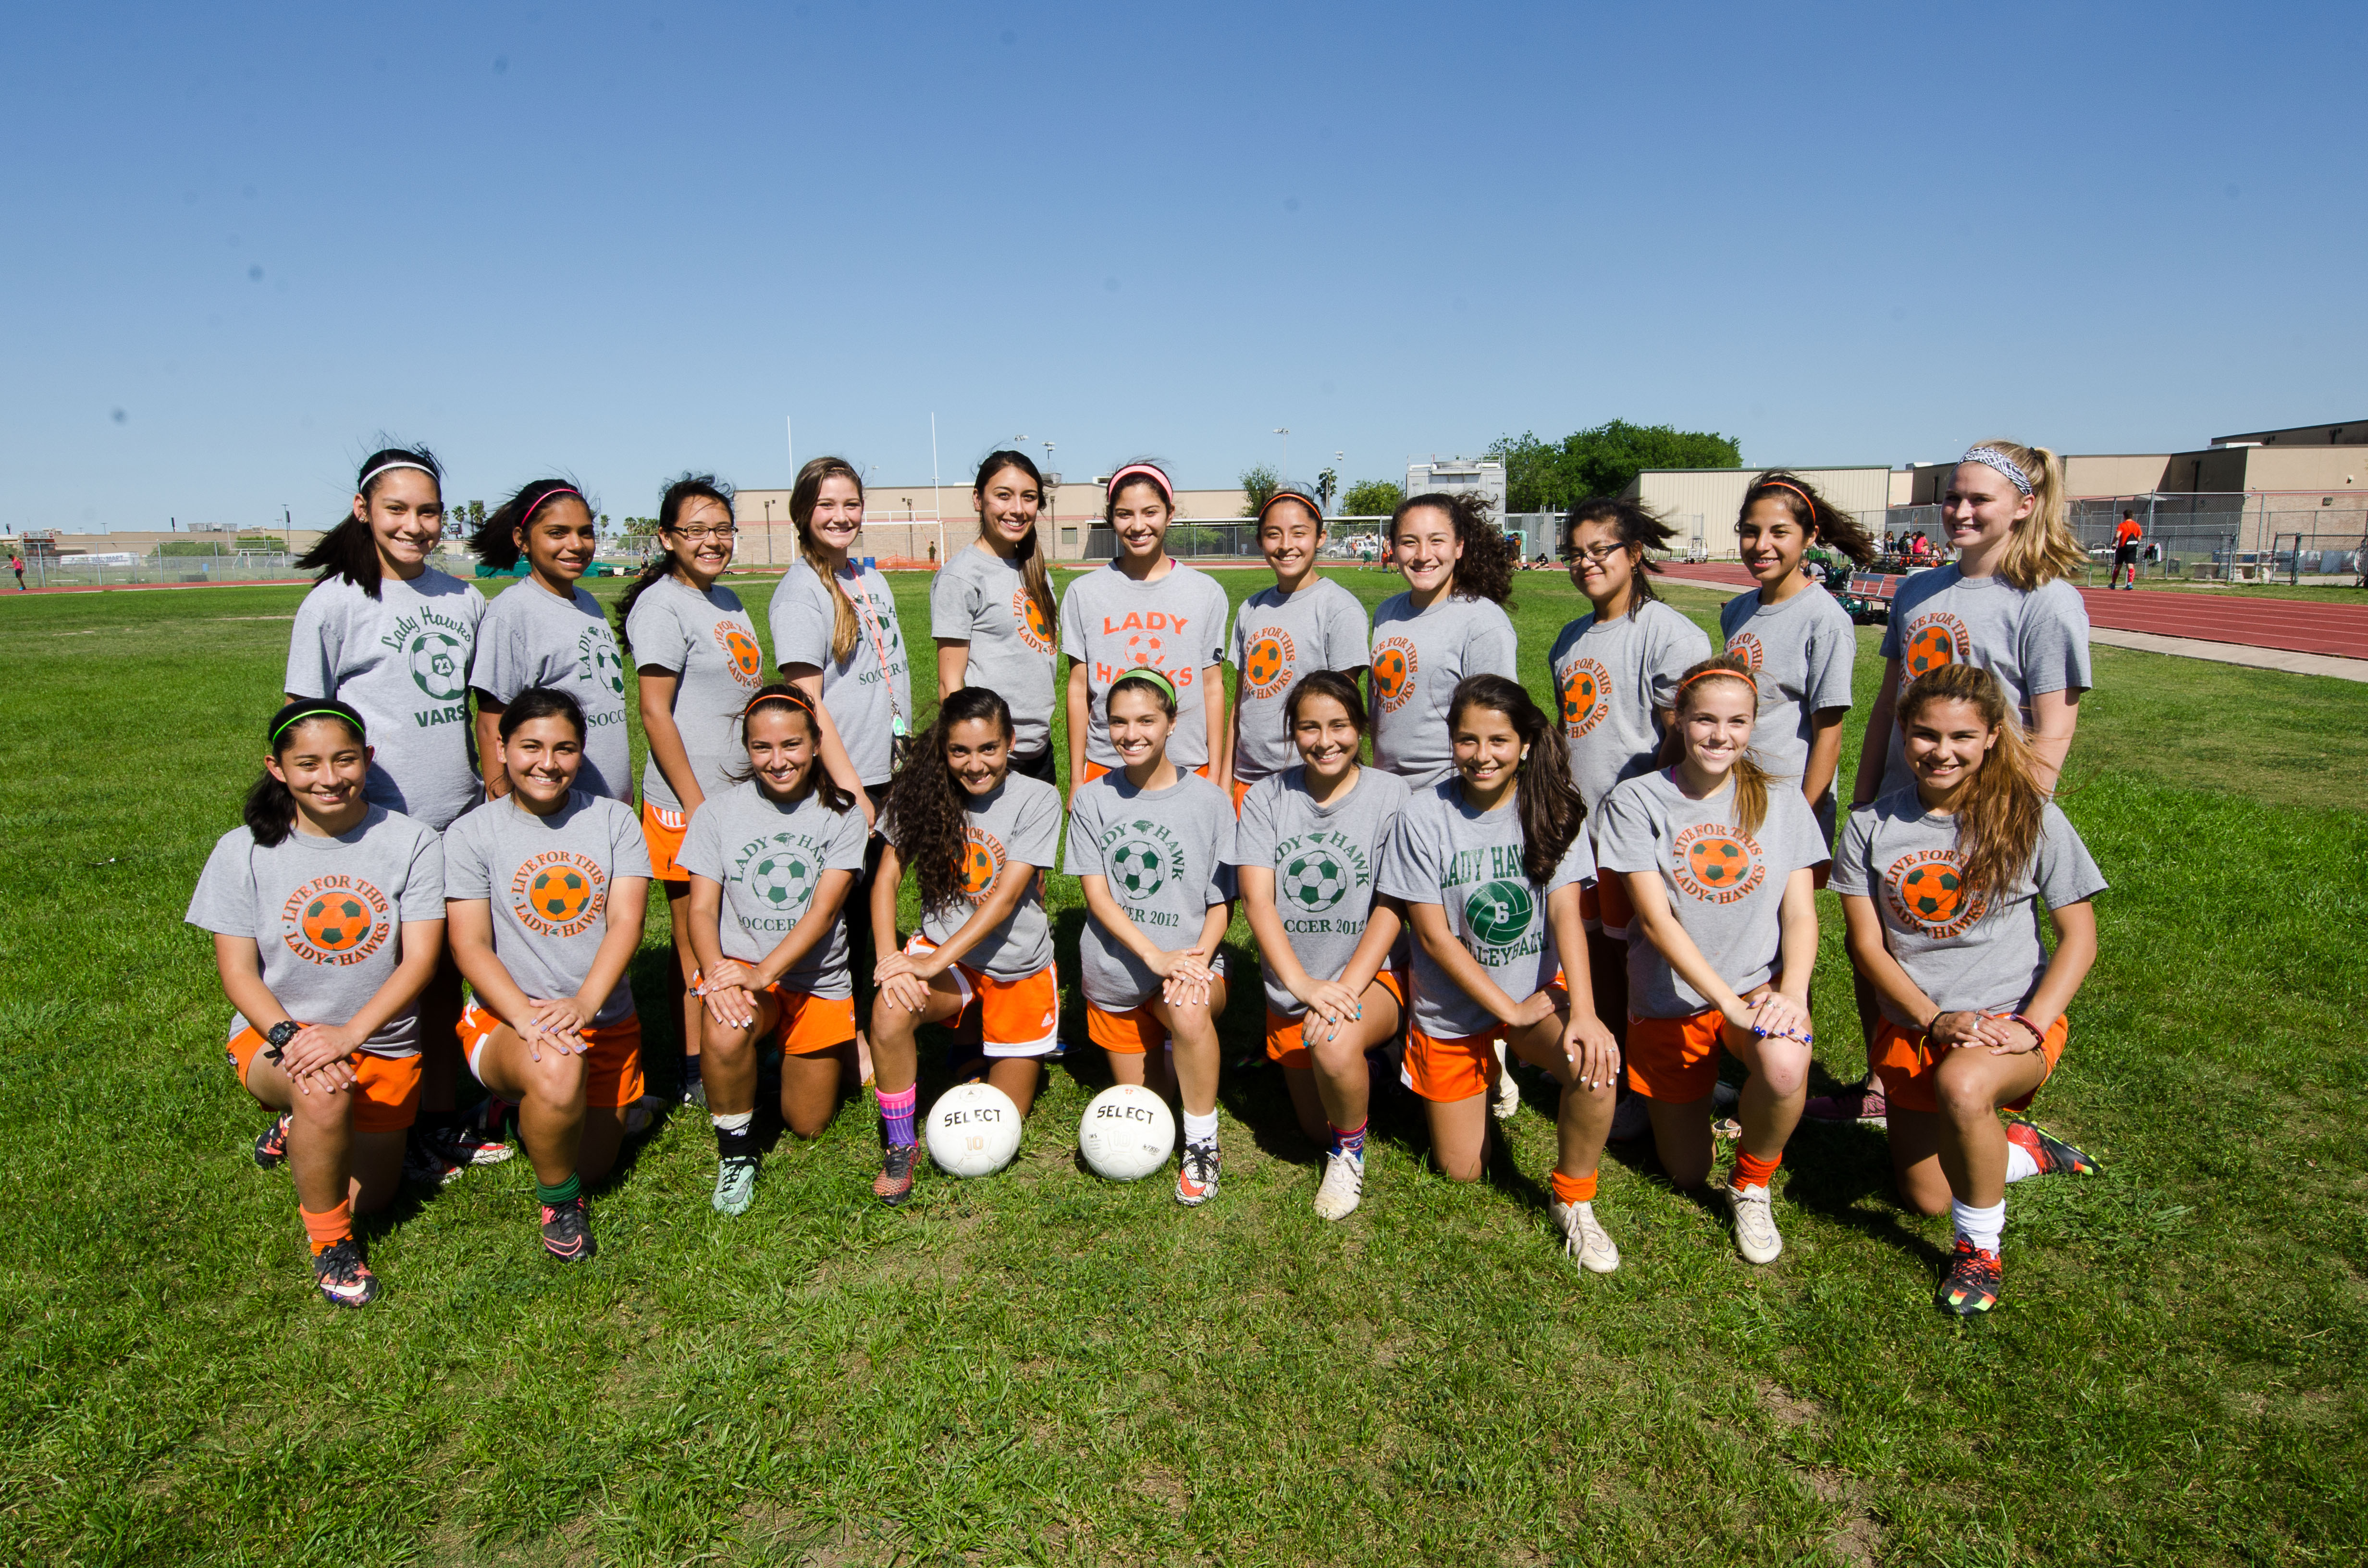 Lady Hawks Soccer Team advances to Regional Quarterfinals